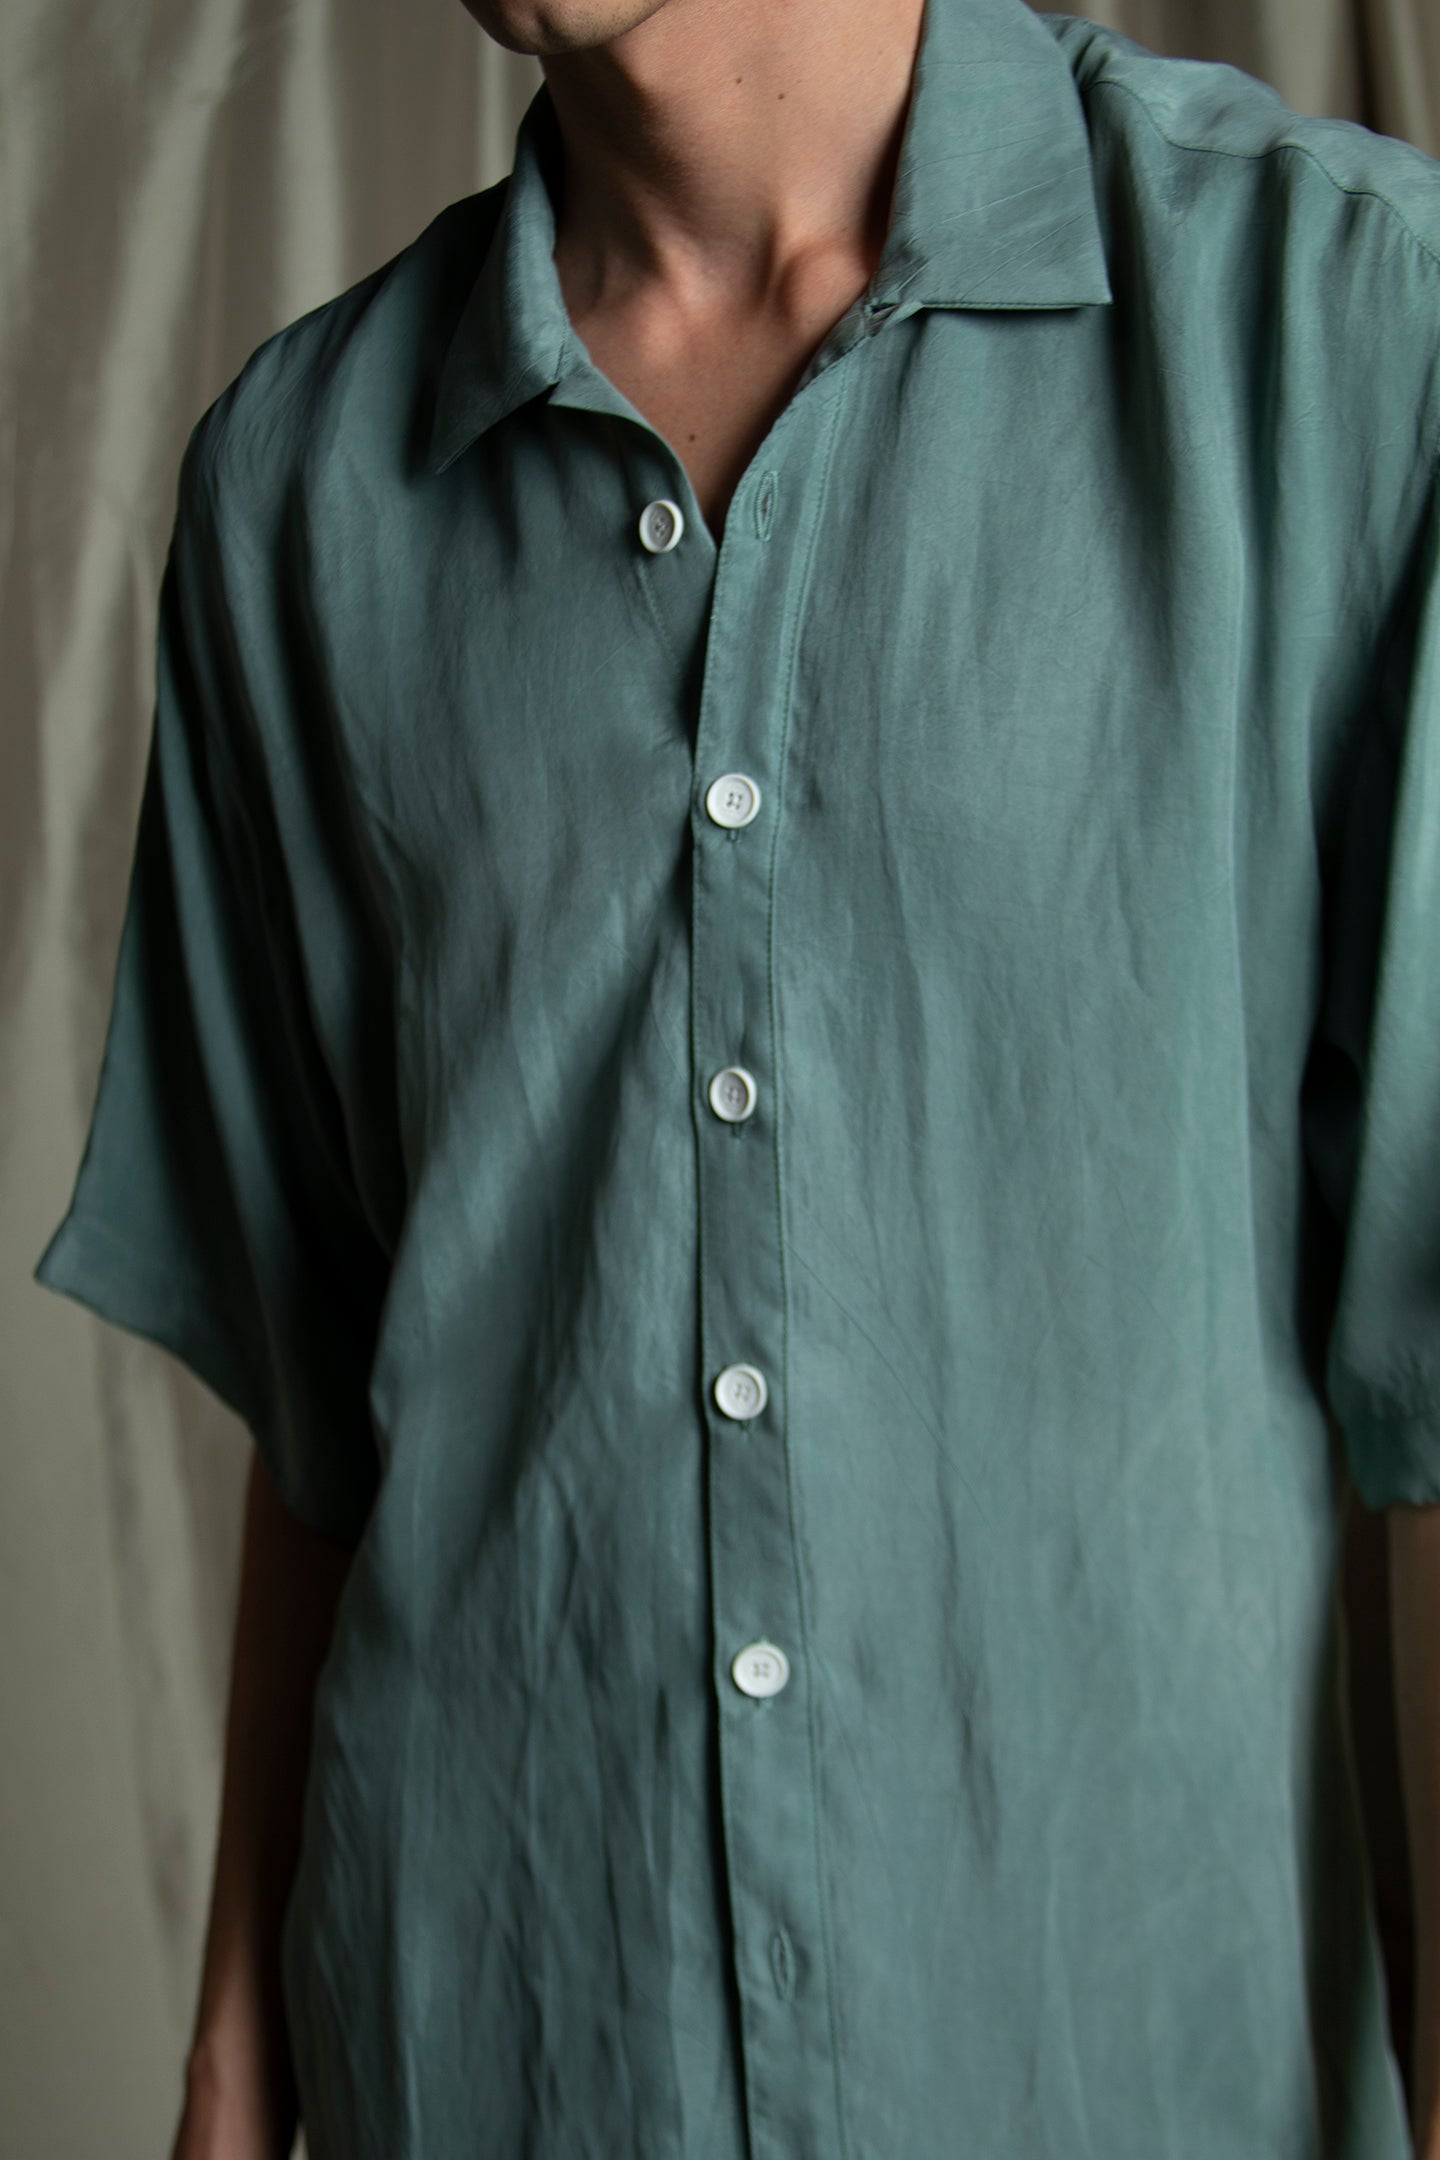 TEAL CRUISE SHIRT